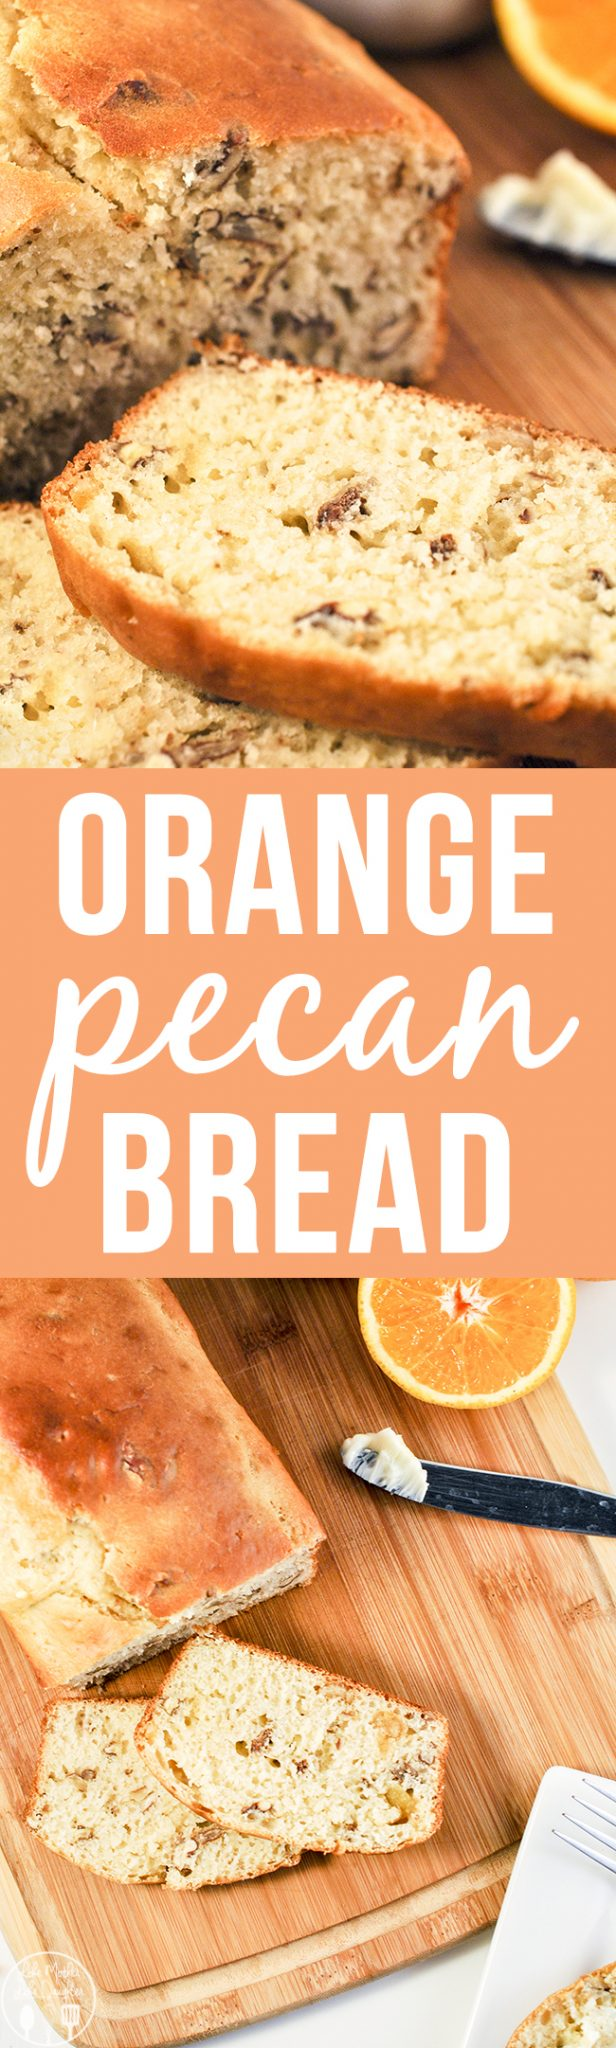 Orange Pecan Bread - A family favorite orange pecan bread with fresh squeezed orange juice, candied orange peels, and chopped pecans that will be sure to become yours too.